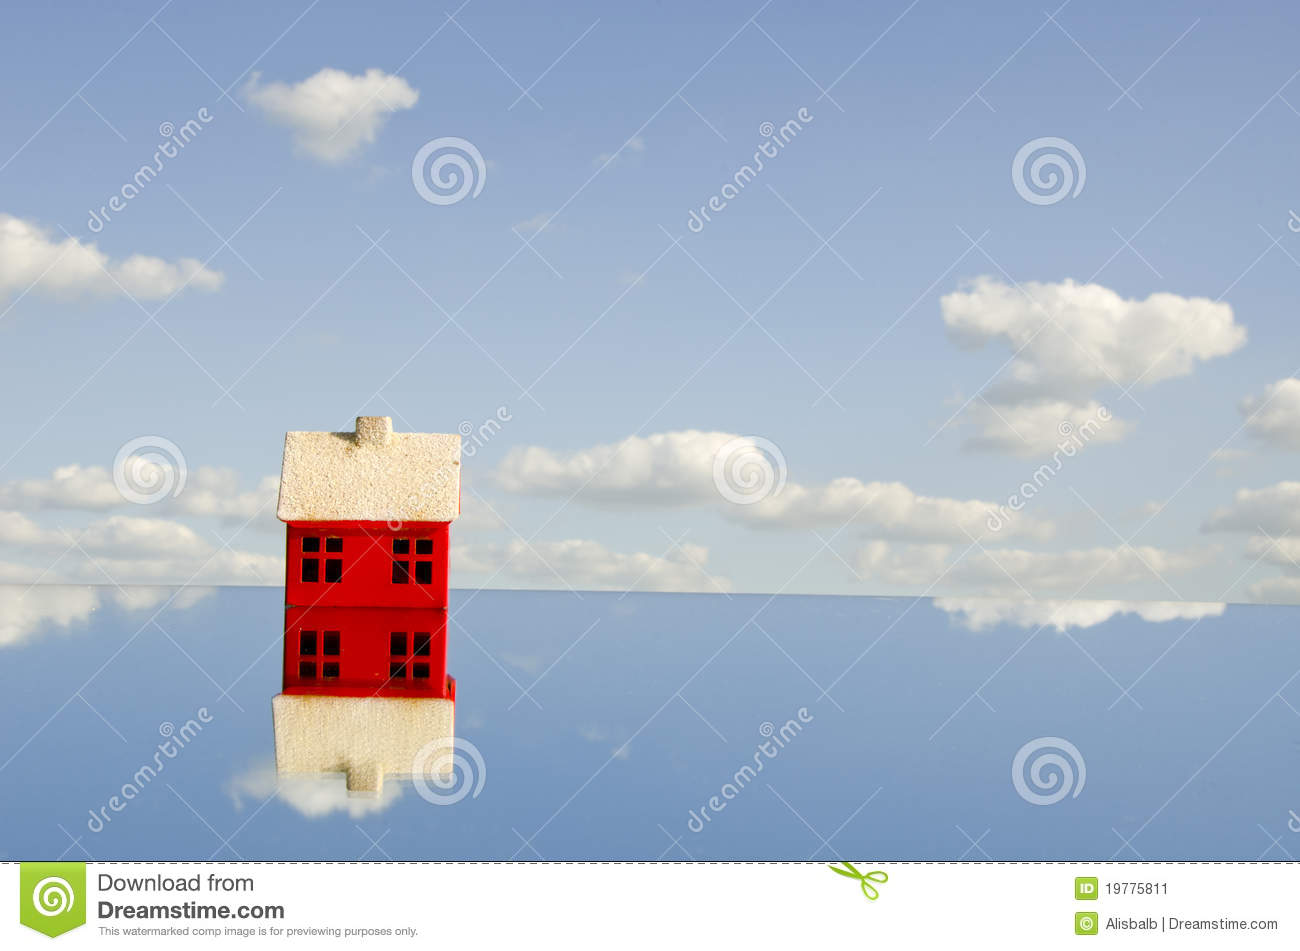 Little red house symbol on mirror